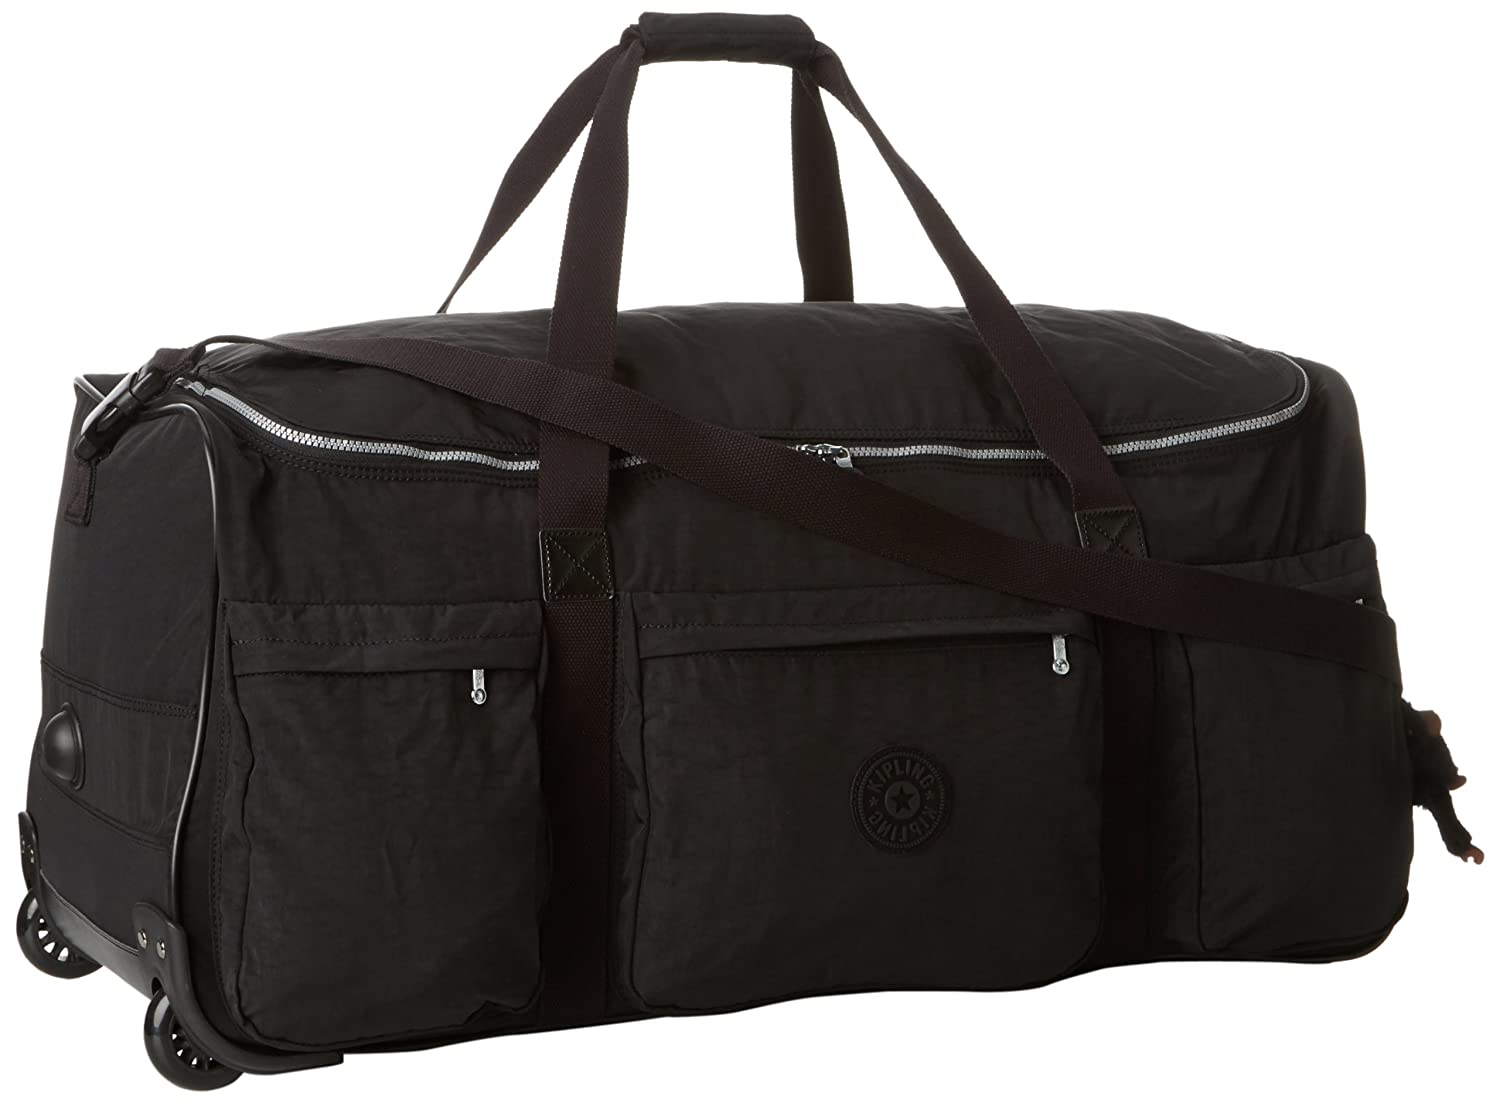 6ddc1b0fd6e3 Amazon.com  Kipling Discover Solid Large Wheeled Luggage Black  Shoes